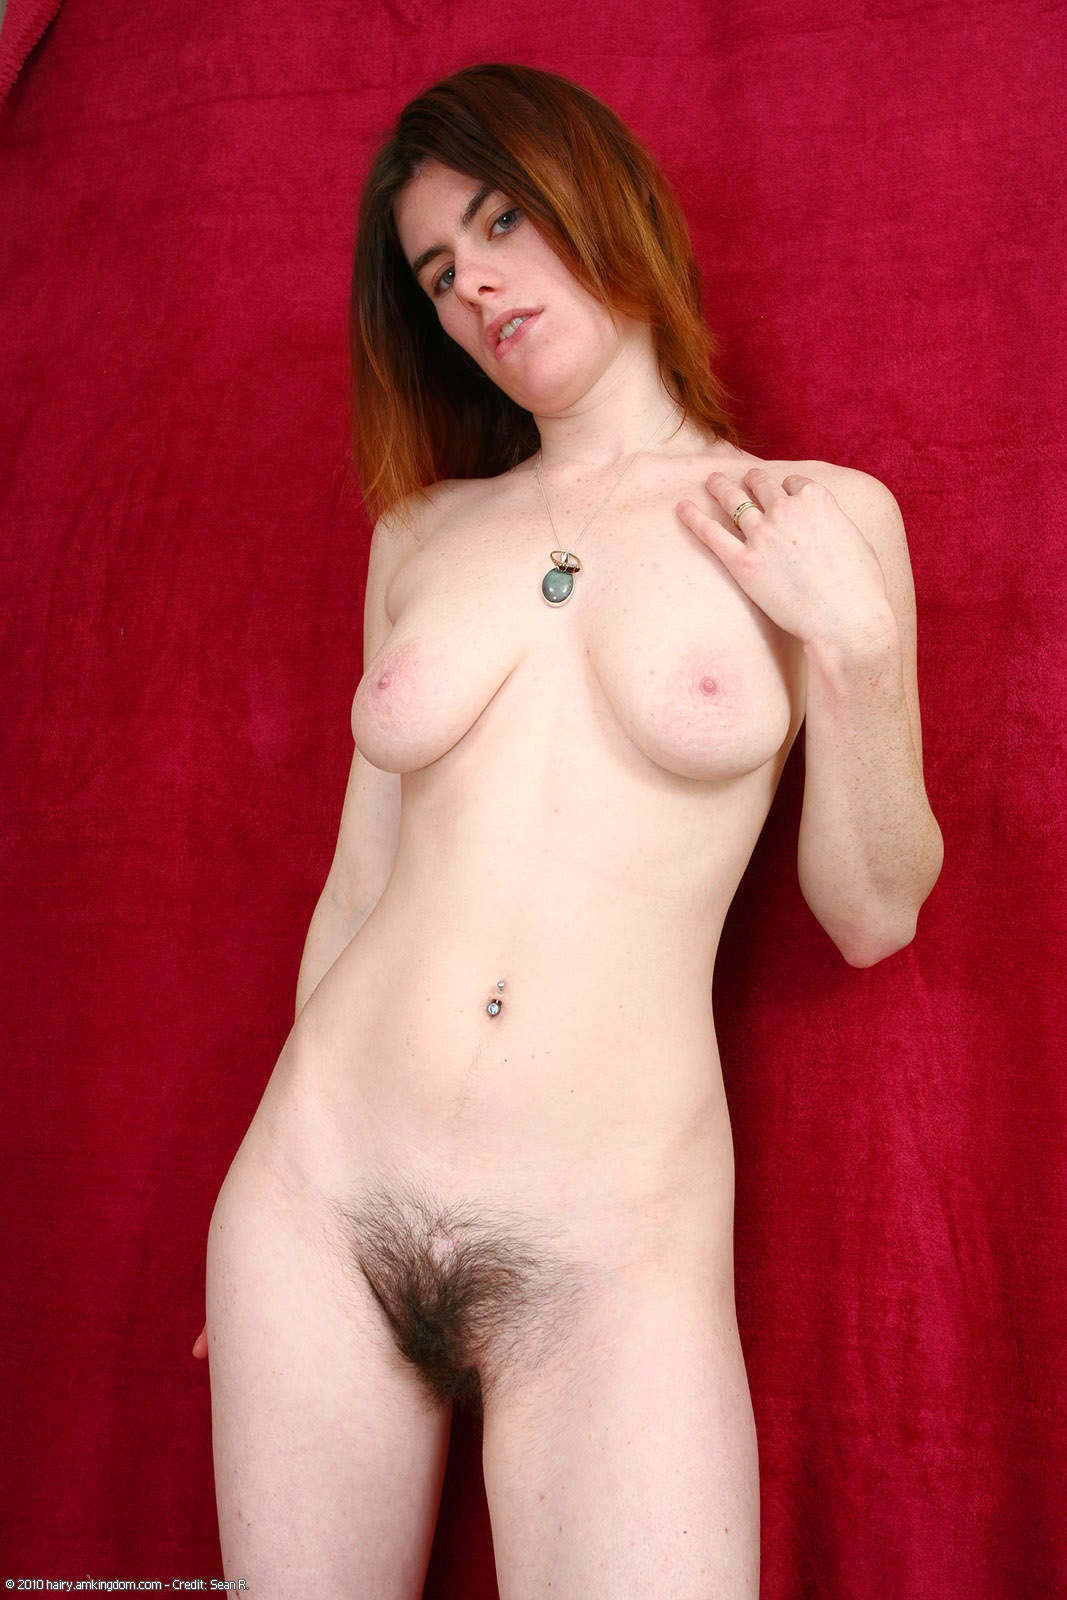 My exgirlfriend nude pic